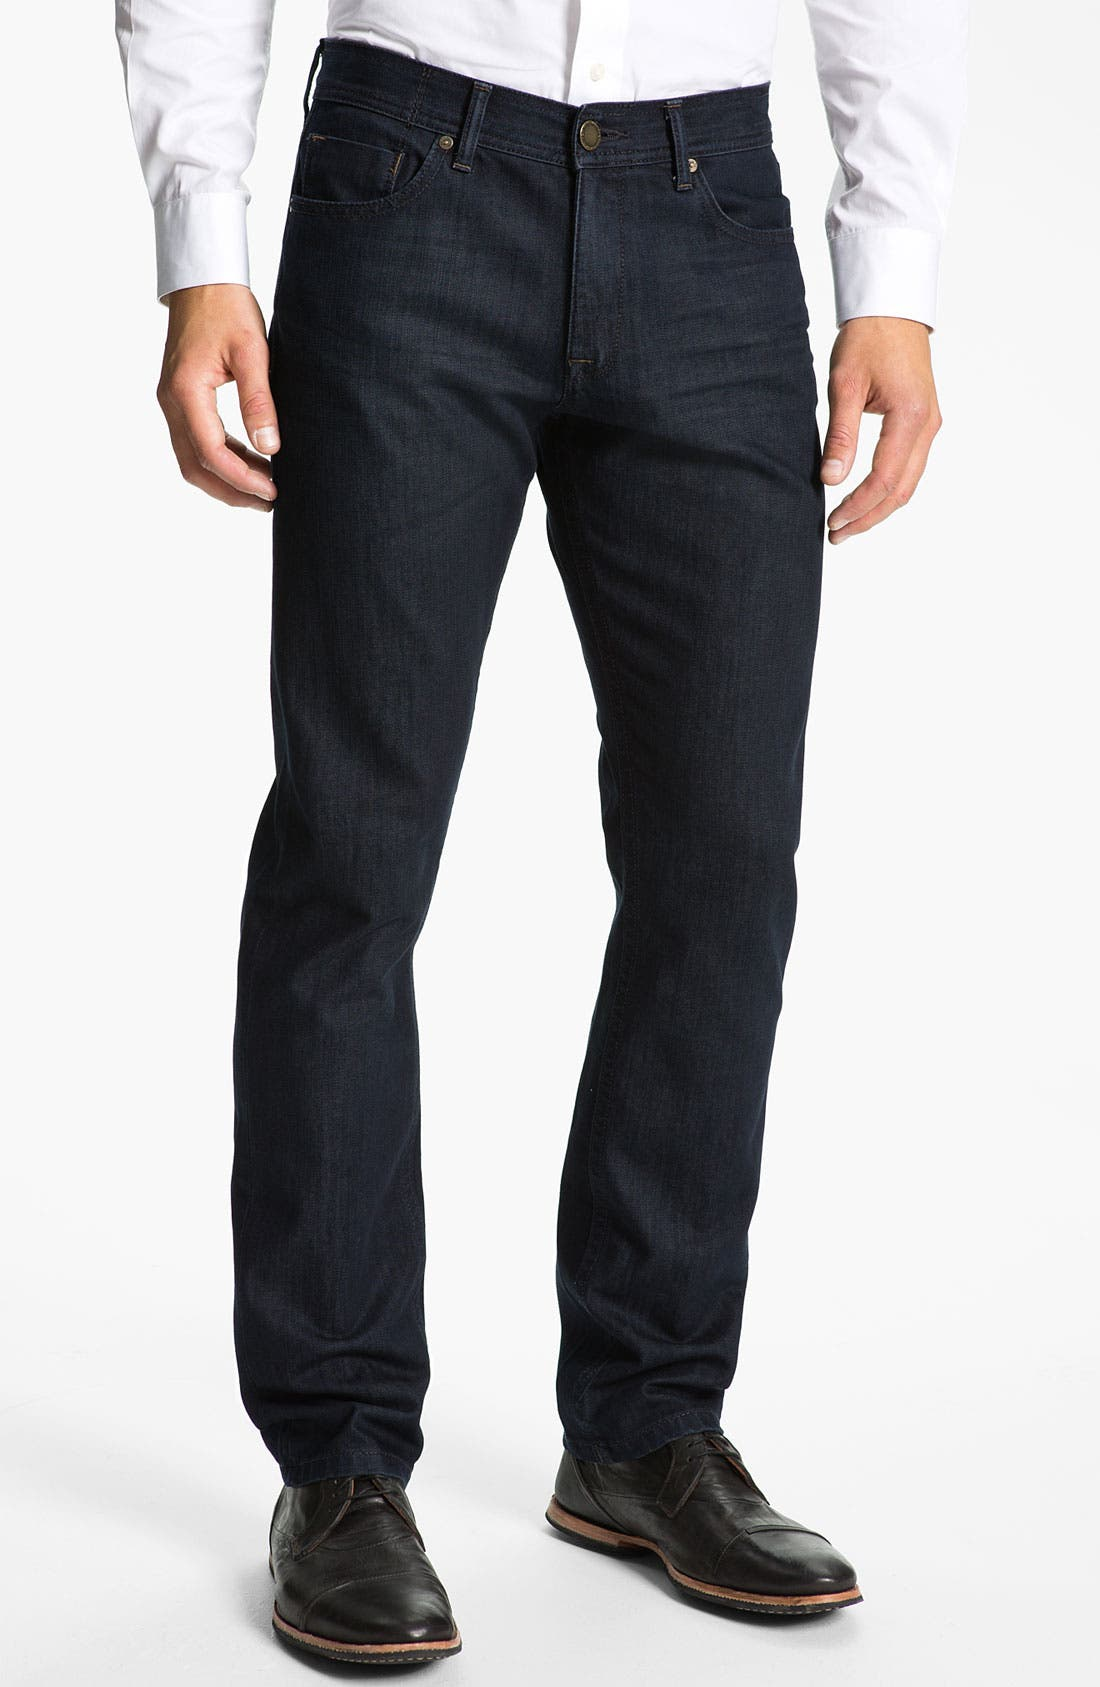 Alternate Image 1 Selected - DL1961 'Vince' Straight Leg Jeans (Diablo)